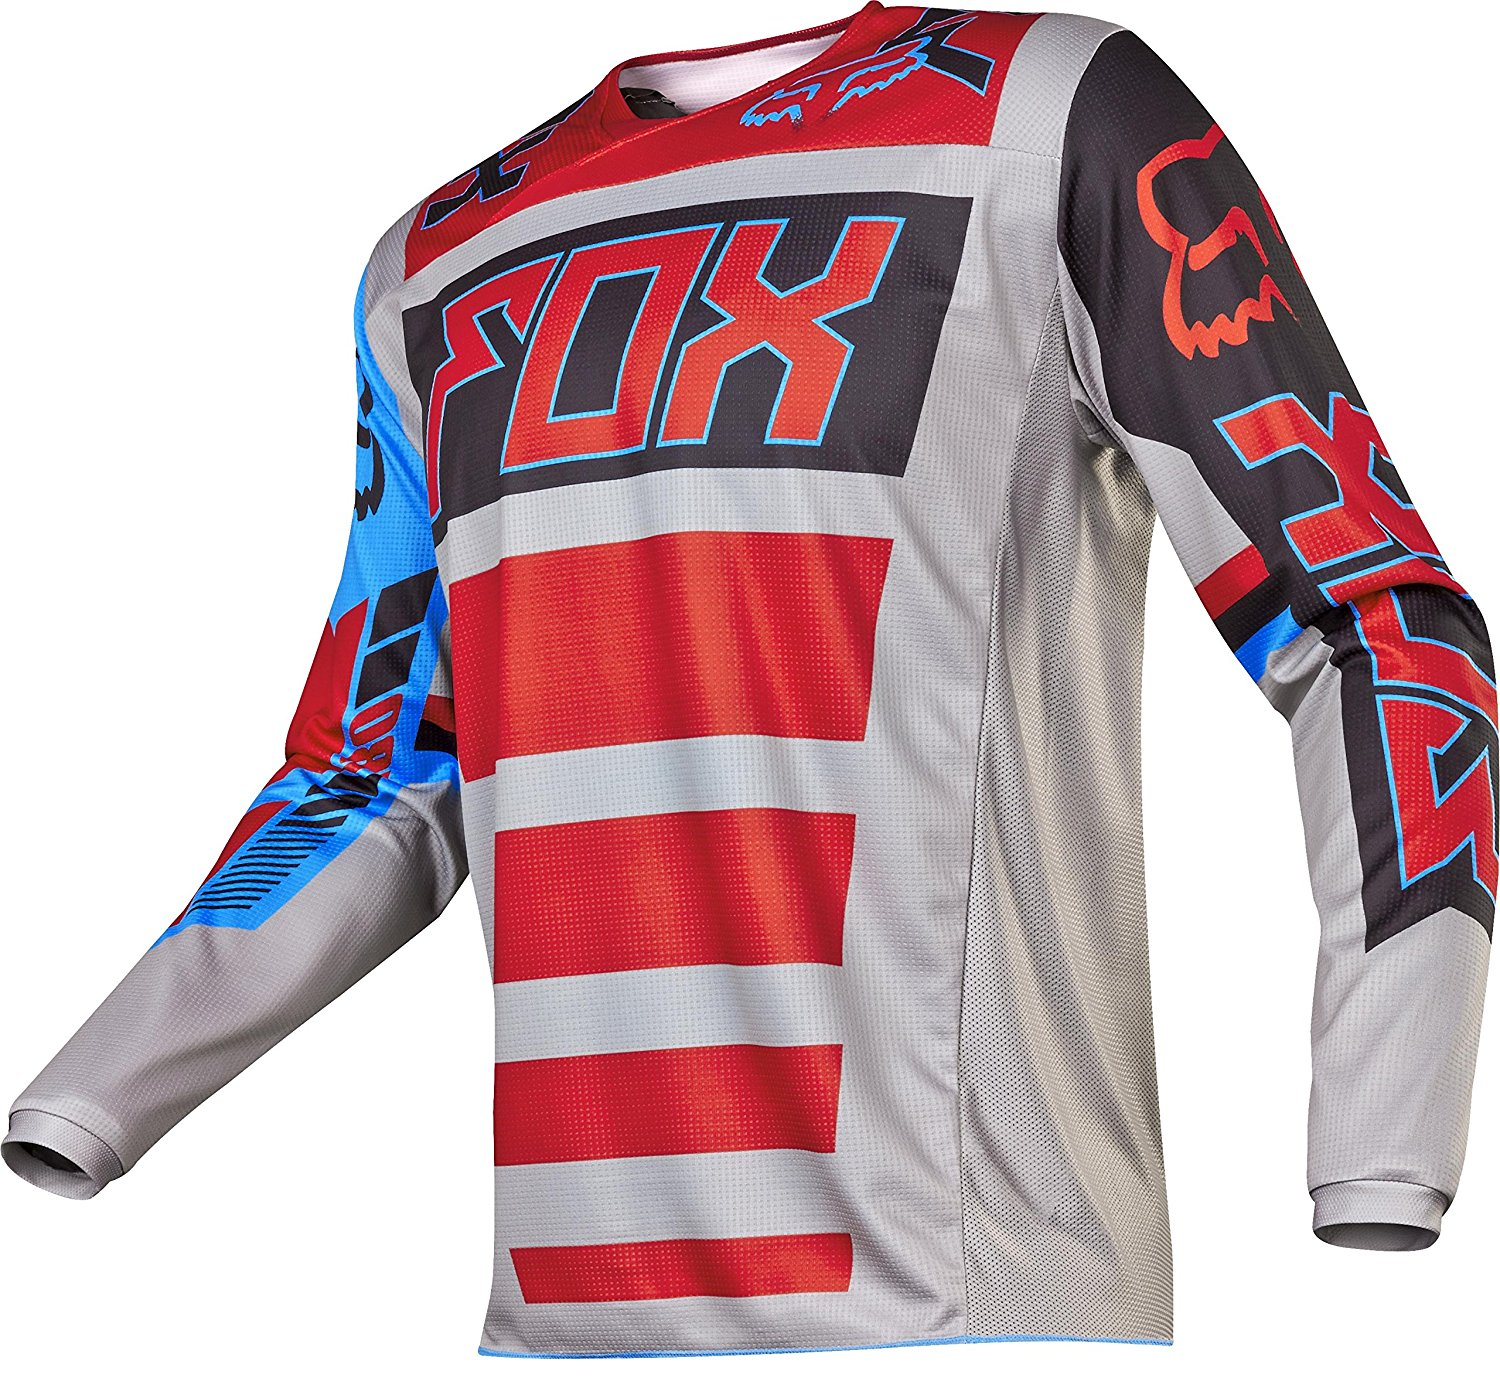 2017 180 Falcon Jersey-Grey/Red-XL, Moisture wicking polyester main body fabric for enhanced performance and comfort By Fox Racing